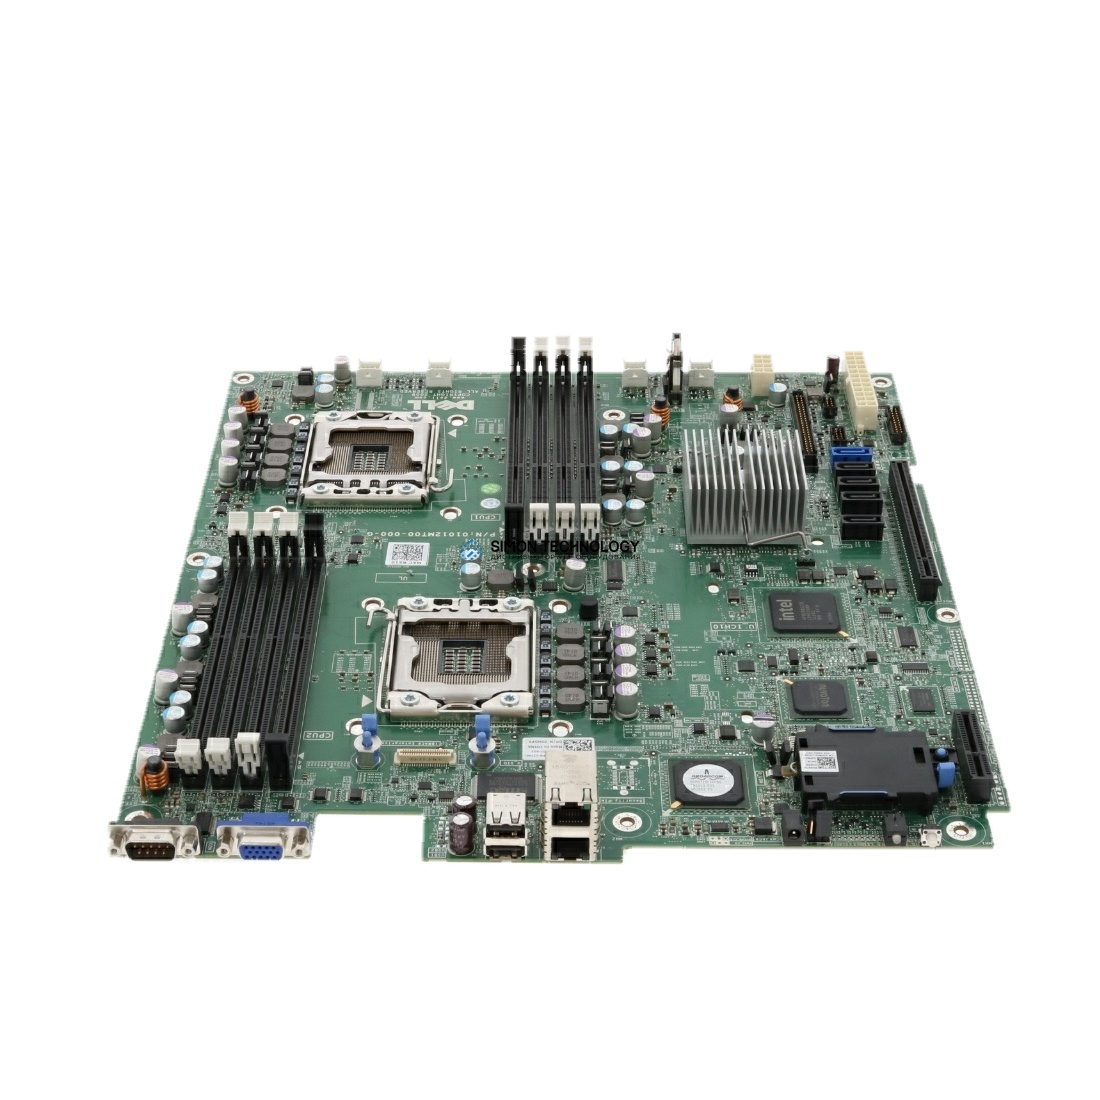 Материнская плата Dell PowerEdge R510 8x3.5 0HDP0 Ask for custom qoute (PER510-LFF-8-0HDP0)